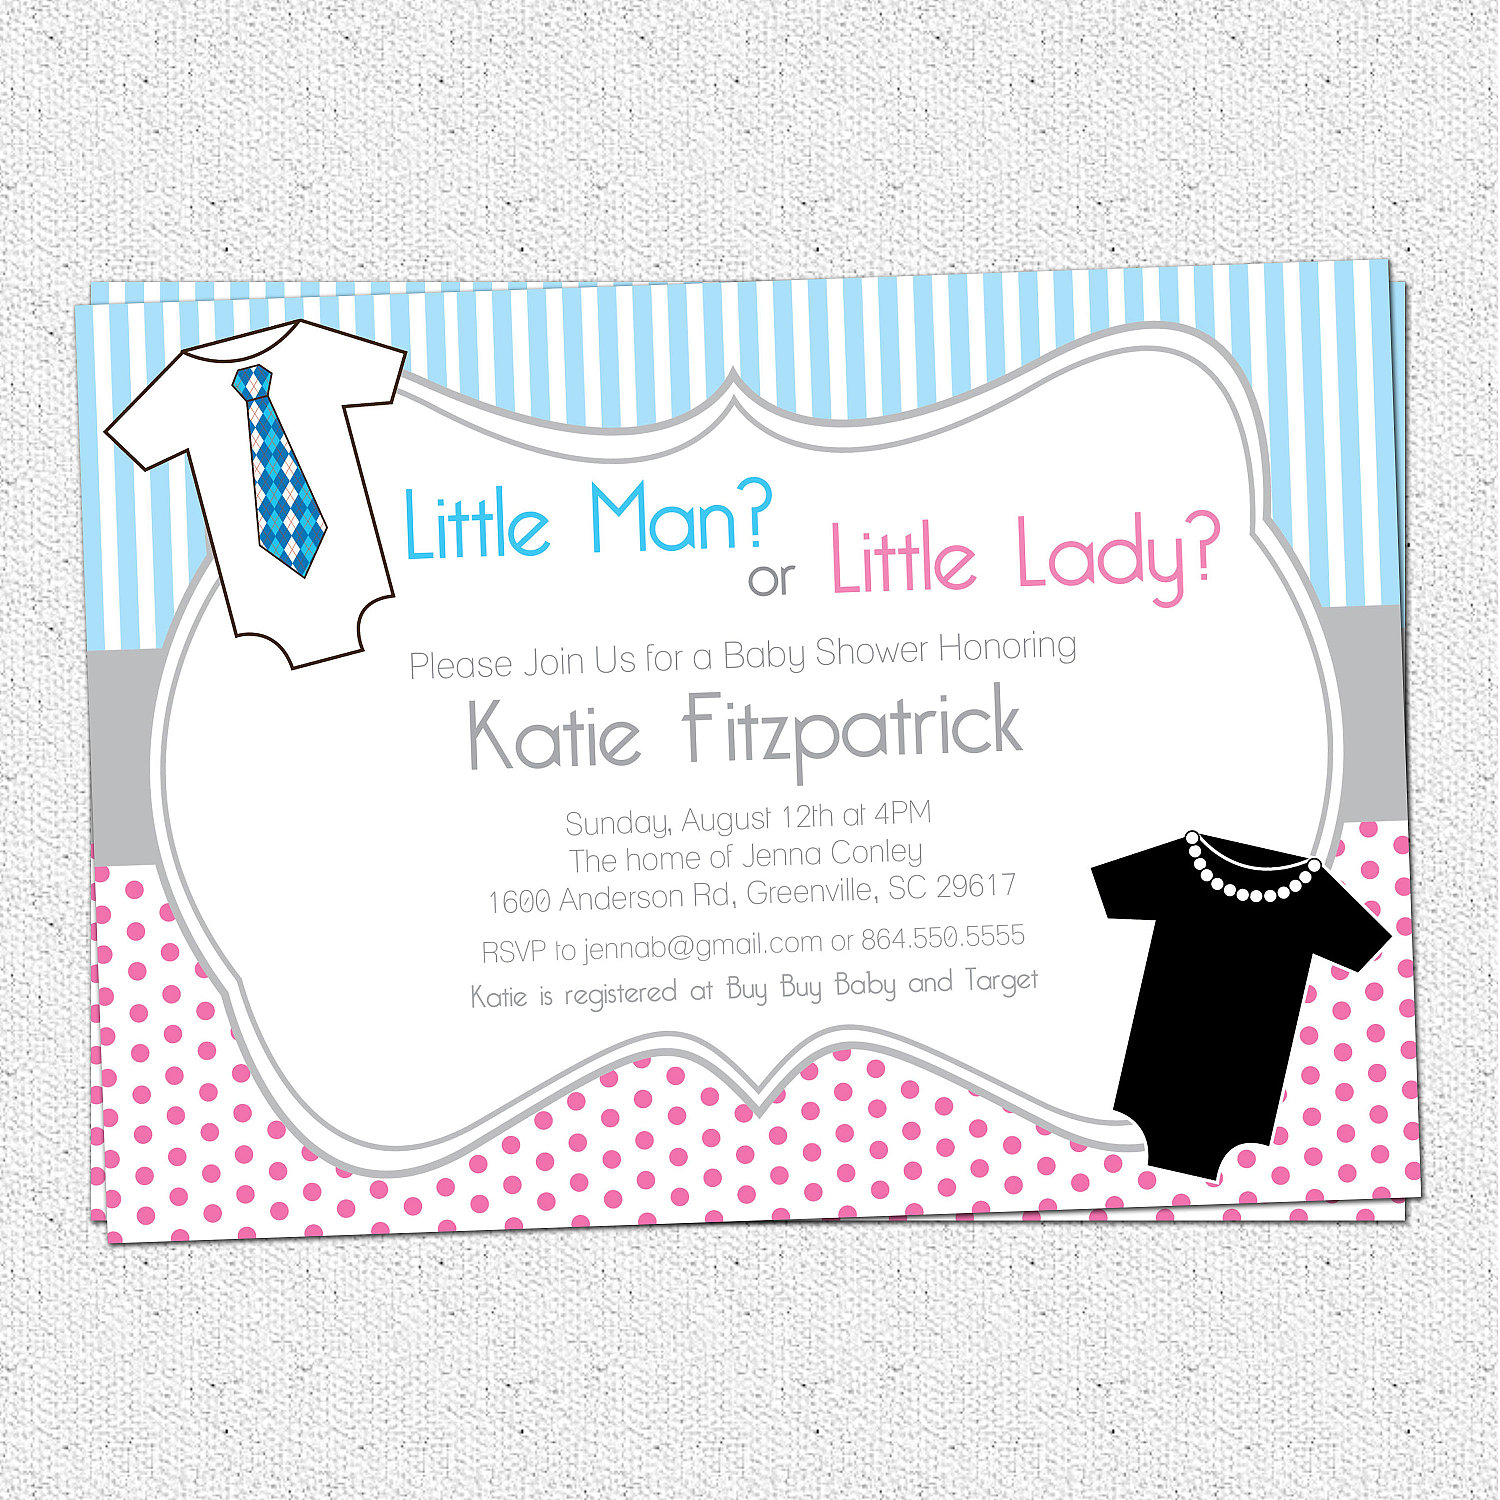 Gender neutral reveal baby shower invitations printable little man gender neutral reveal baby shower invitations printable little man or lady pink and filmwisefo